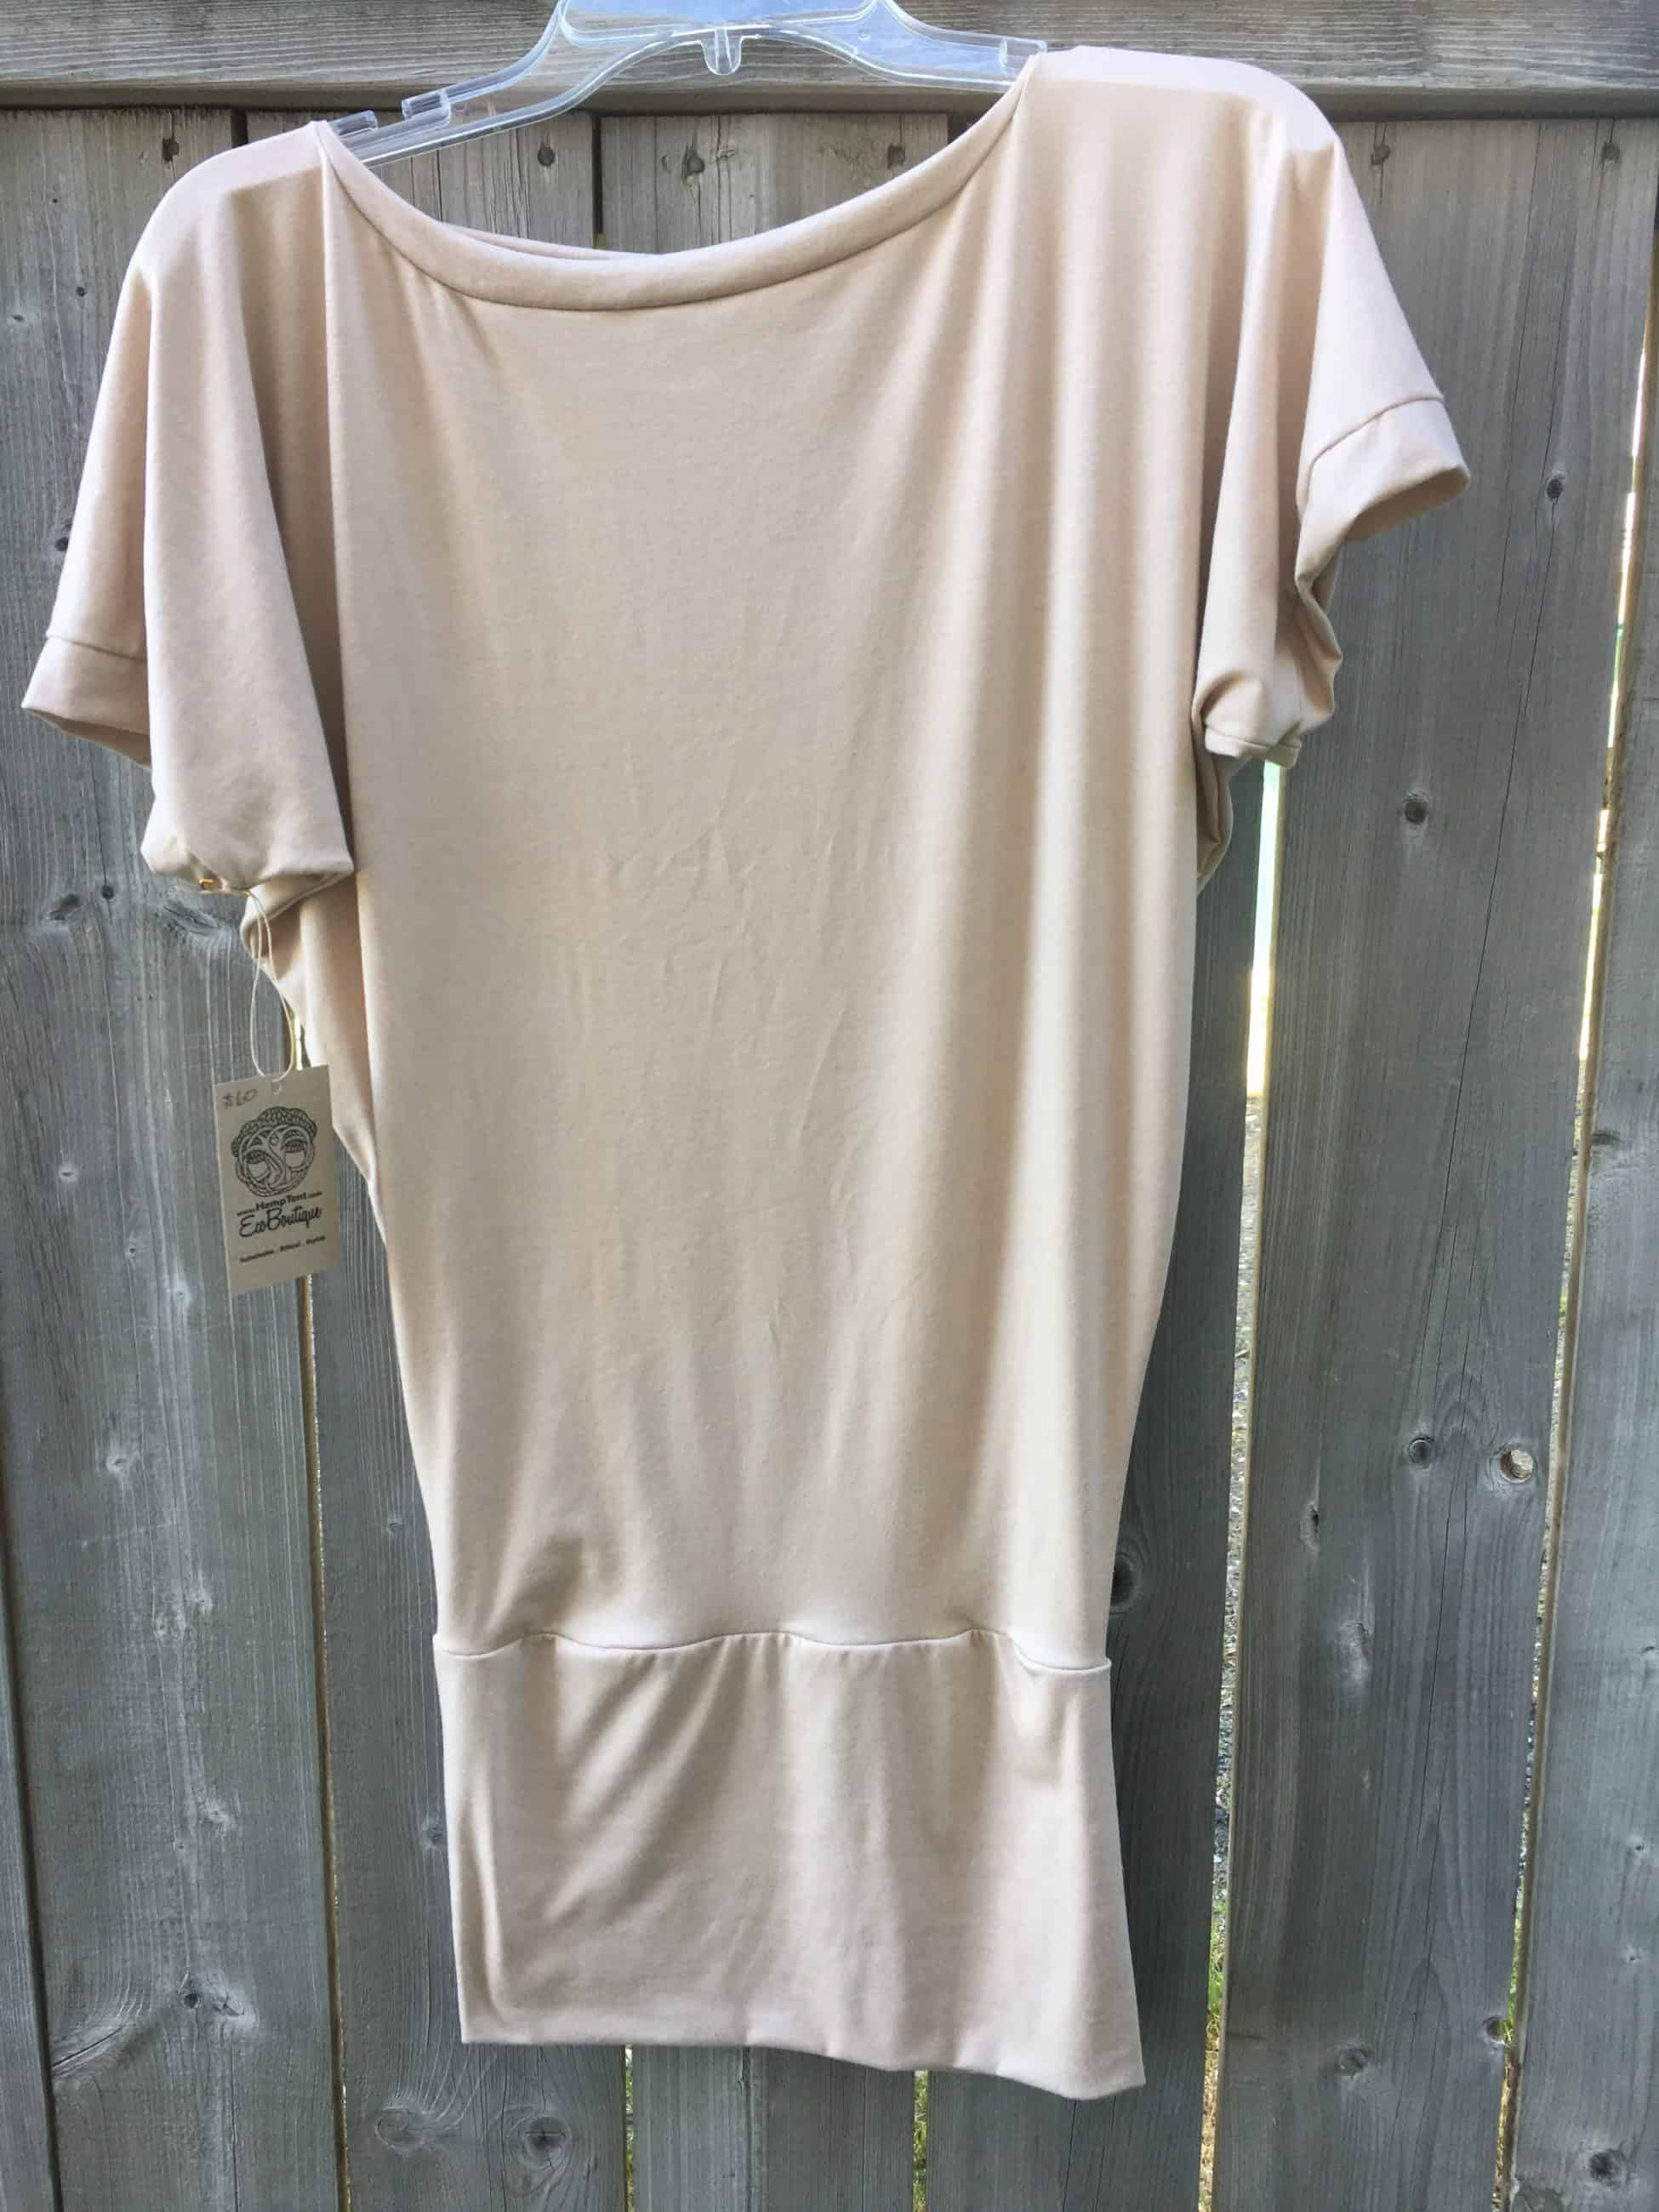 Boat neck shirt dress made in Canada